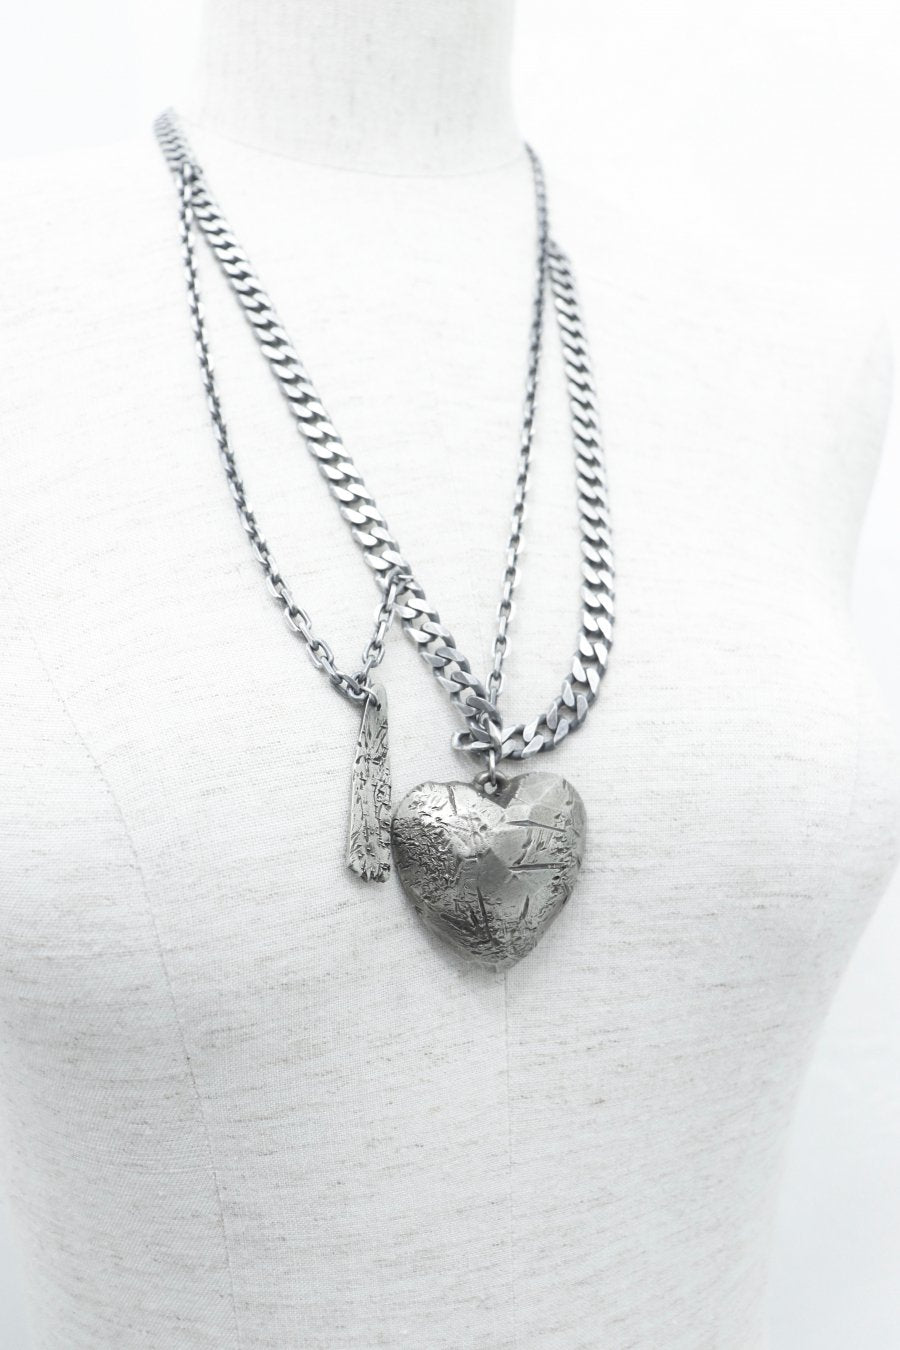 【serial number-2】YUKI HASHIMOTO × PALETTE art alive  LIMITED NECKLACE